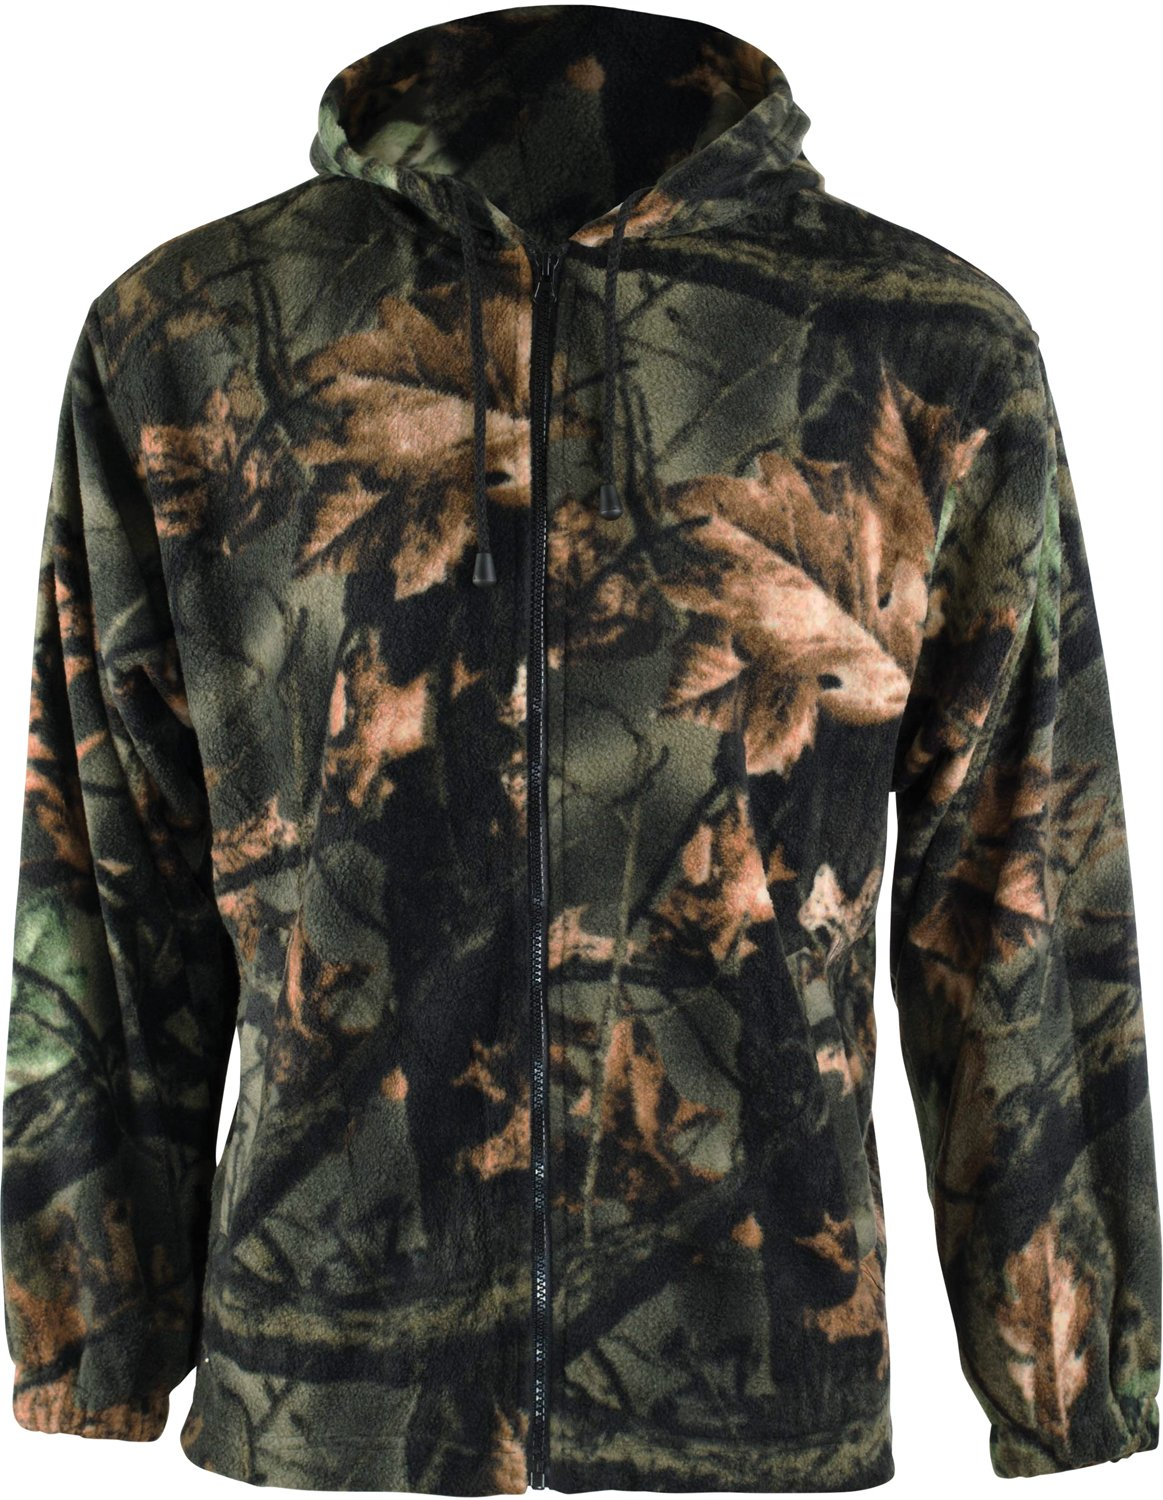 1941c33ccf319 WARM AND COMFORTABLE:-this ultimate hunting sweatshirt is the ideal to take  along on any hunt! Modern classic fit, light and comfortable-an outdoor  STAPLE ...